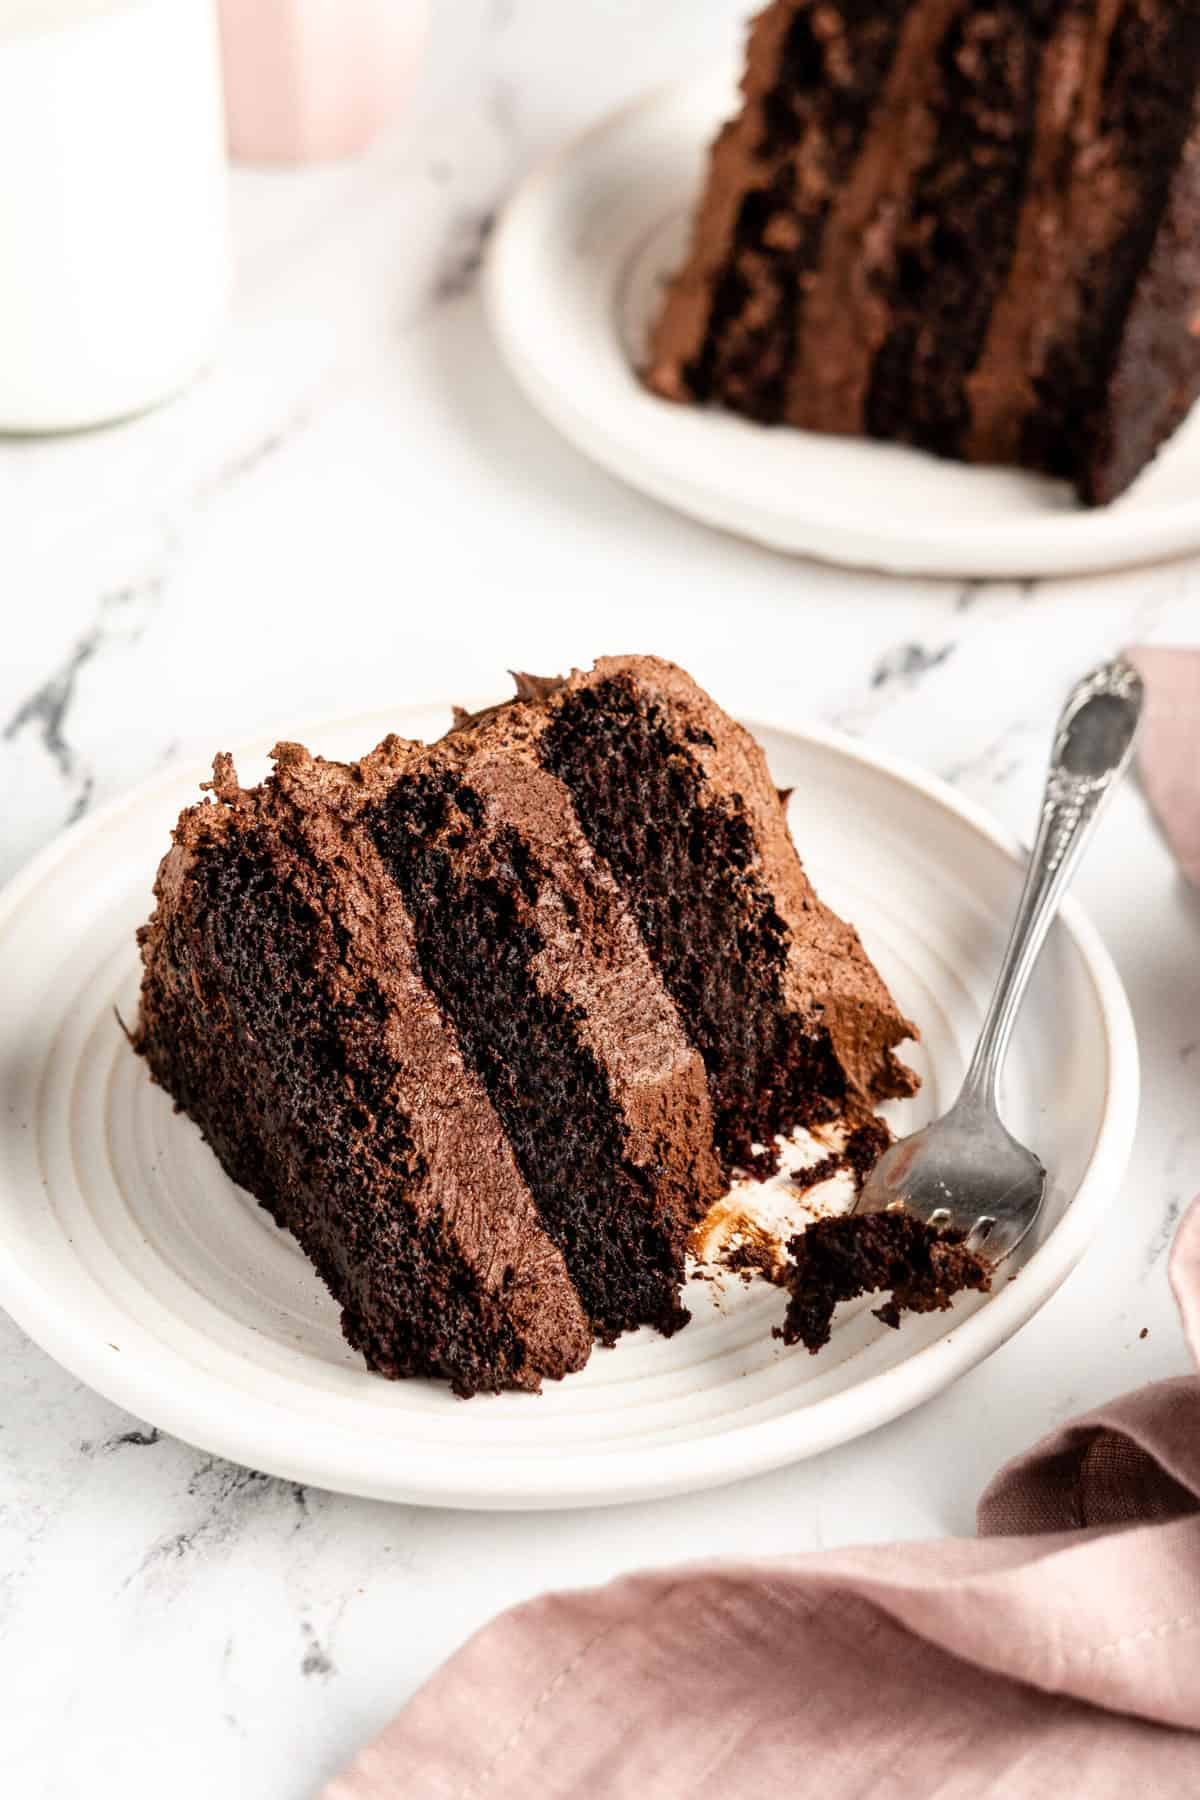 slice of chocolate cake on a plate with a fork